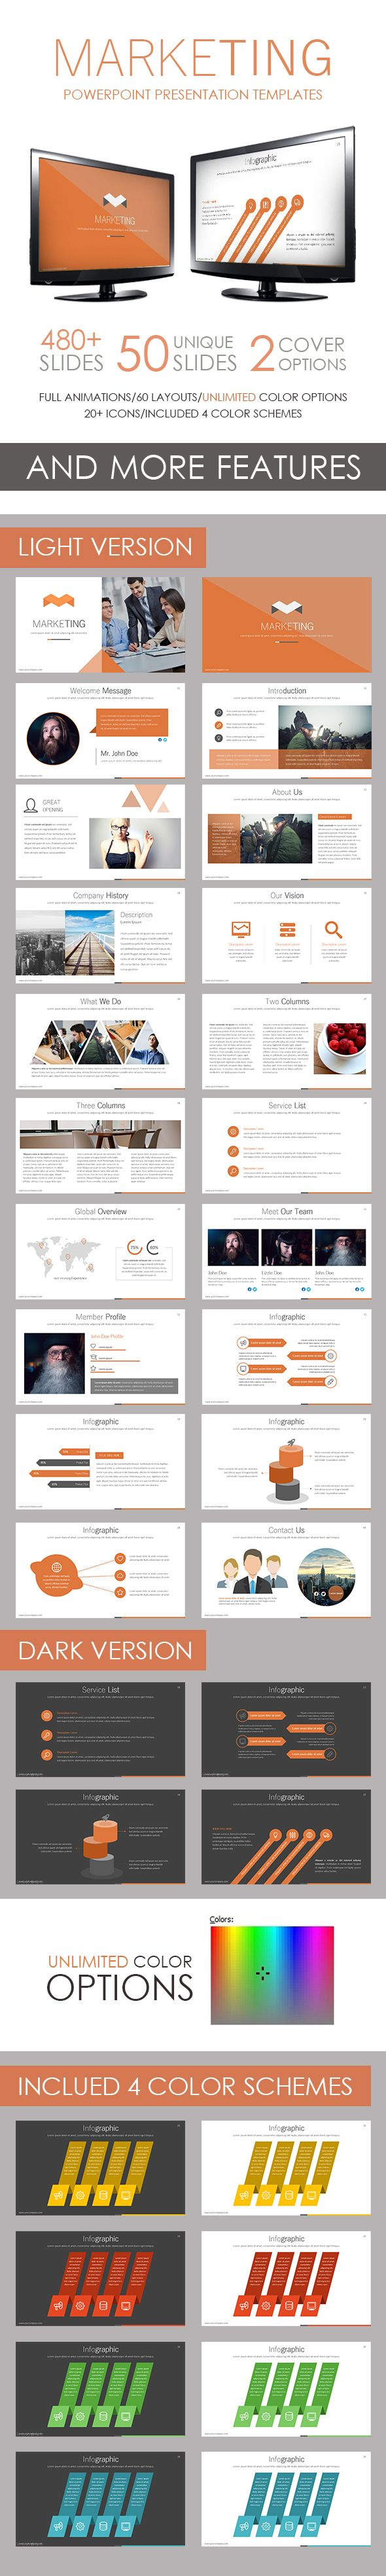 Marketing PowerPoint Template #slides #design Download: http://graphicriver.net/item/marketing-powerpoint-template/14201769?ref=ksioks